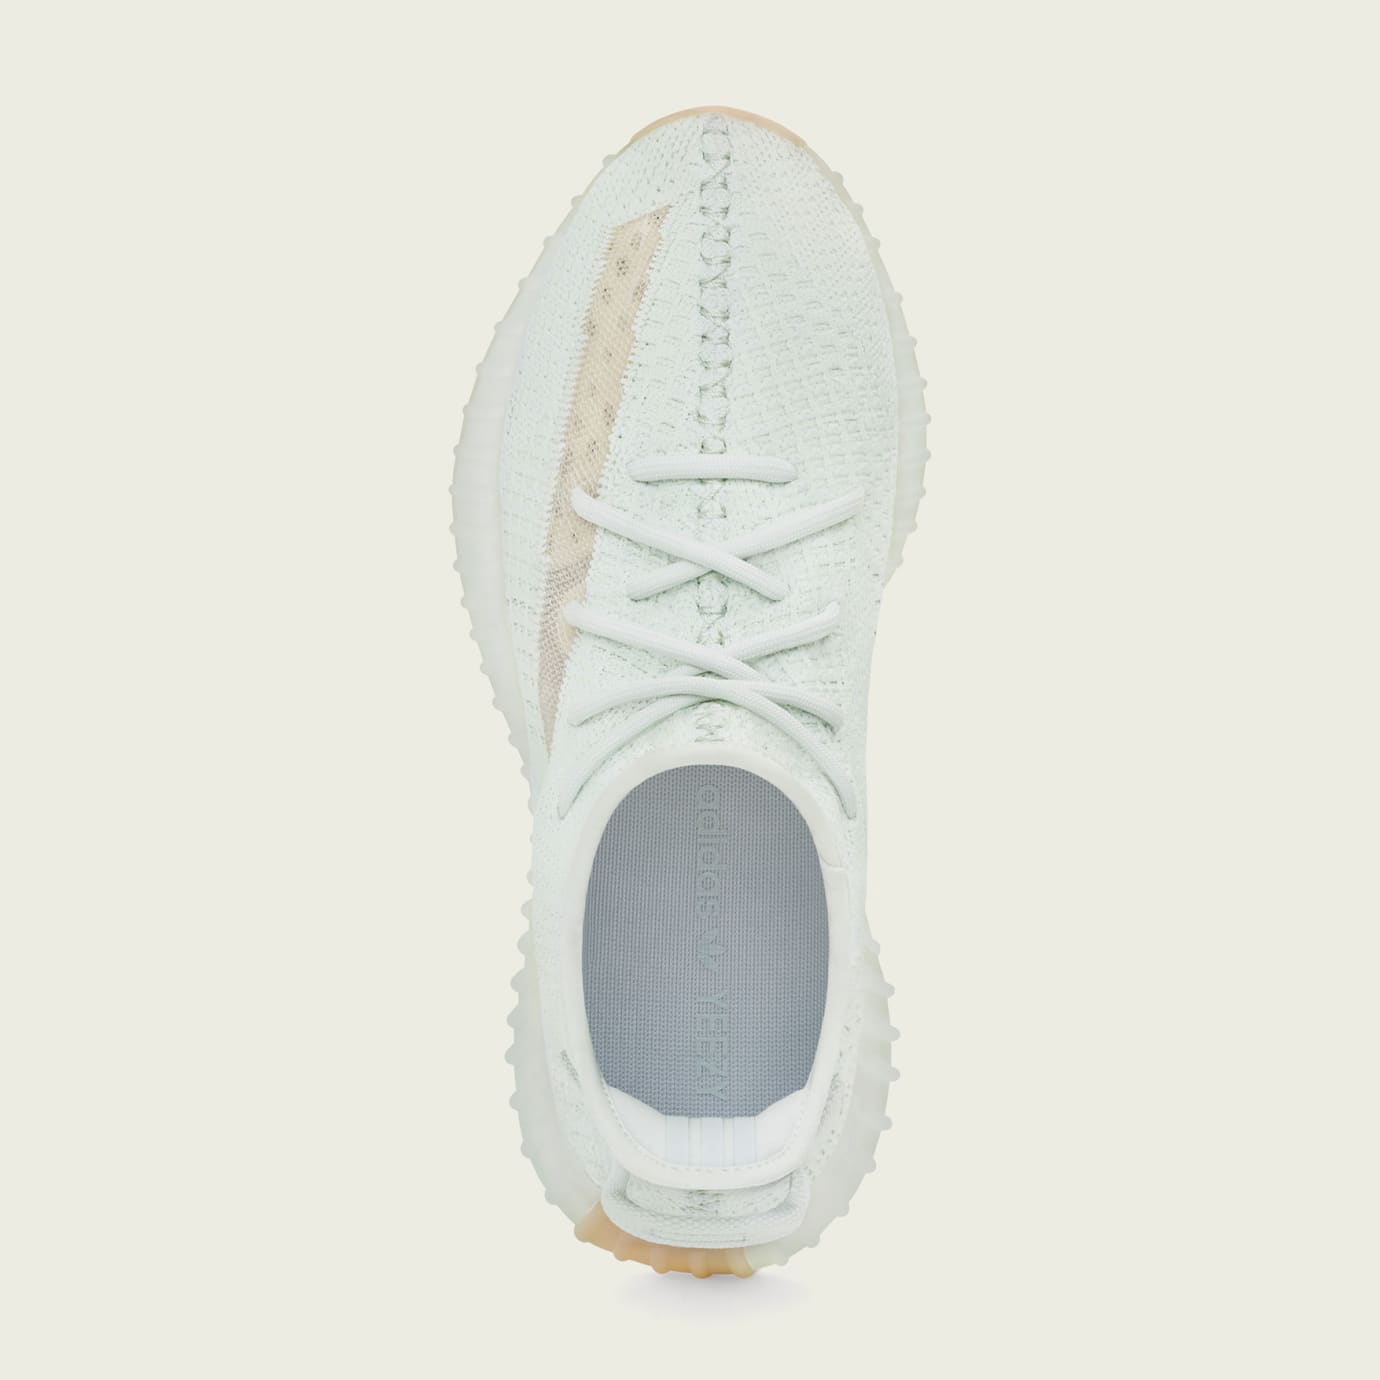 24efeaa1d40fa Image via Adidas Adidas Yeezy Boost 350 V2  Hyperspace  EG7491 Top